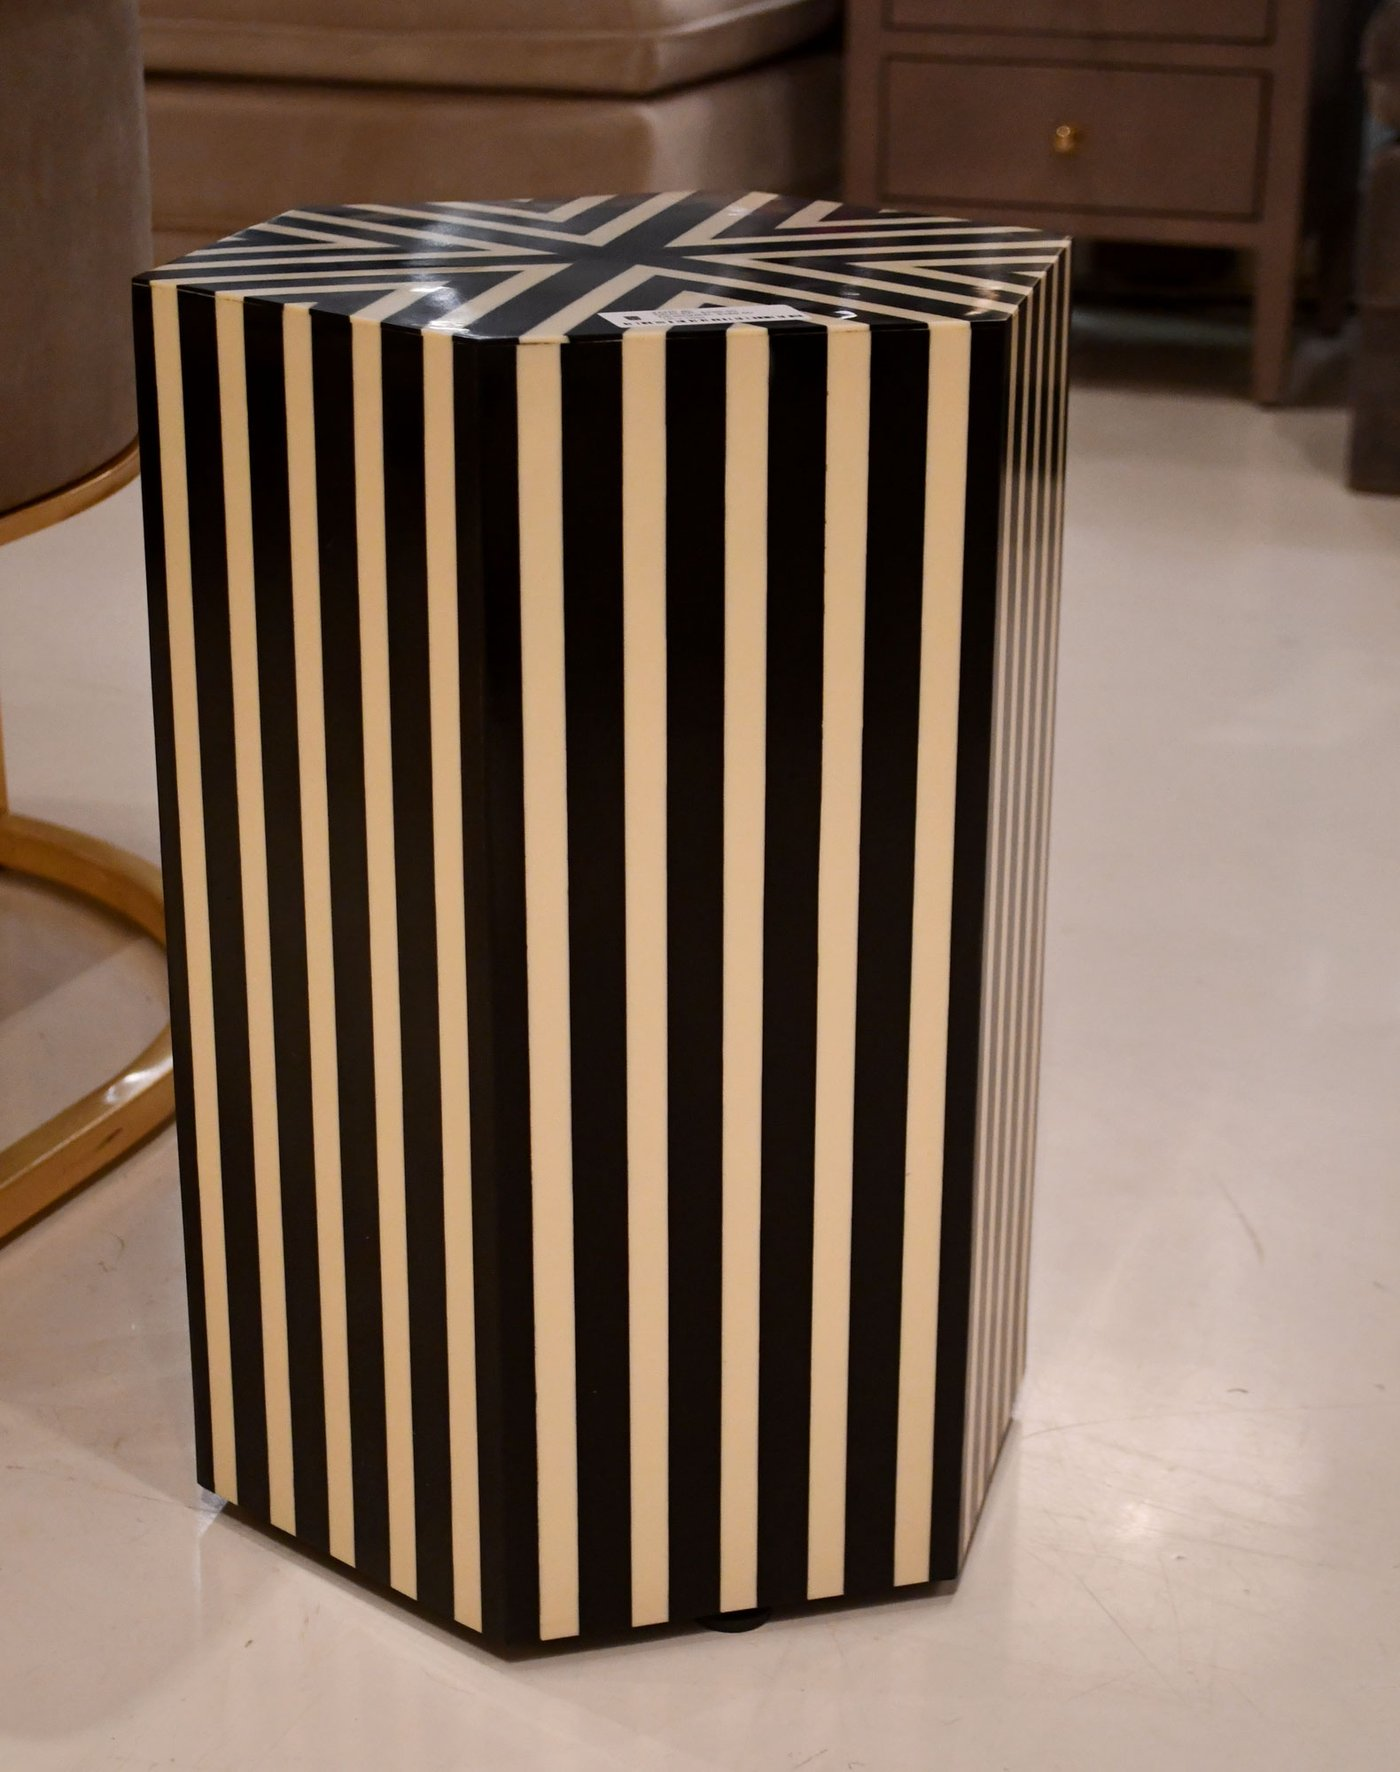 worlds away zane side table black dsc accent stool and white resin seating showroom red coffee target barn dining room champagne cooler mirrored glass wicker patio brass furniture